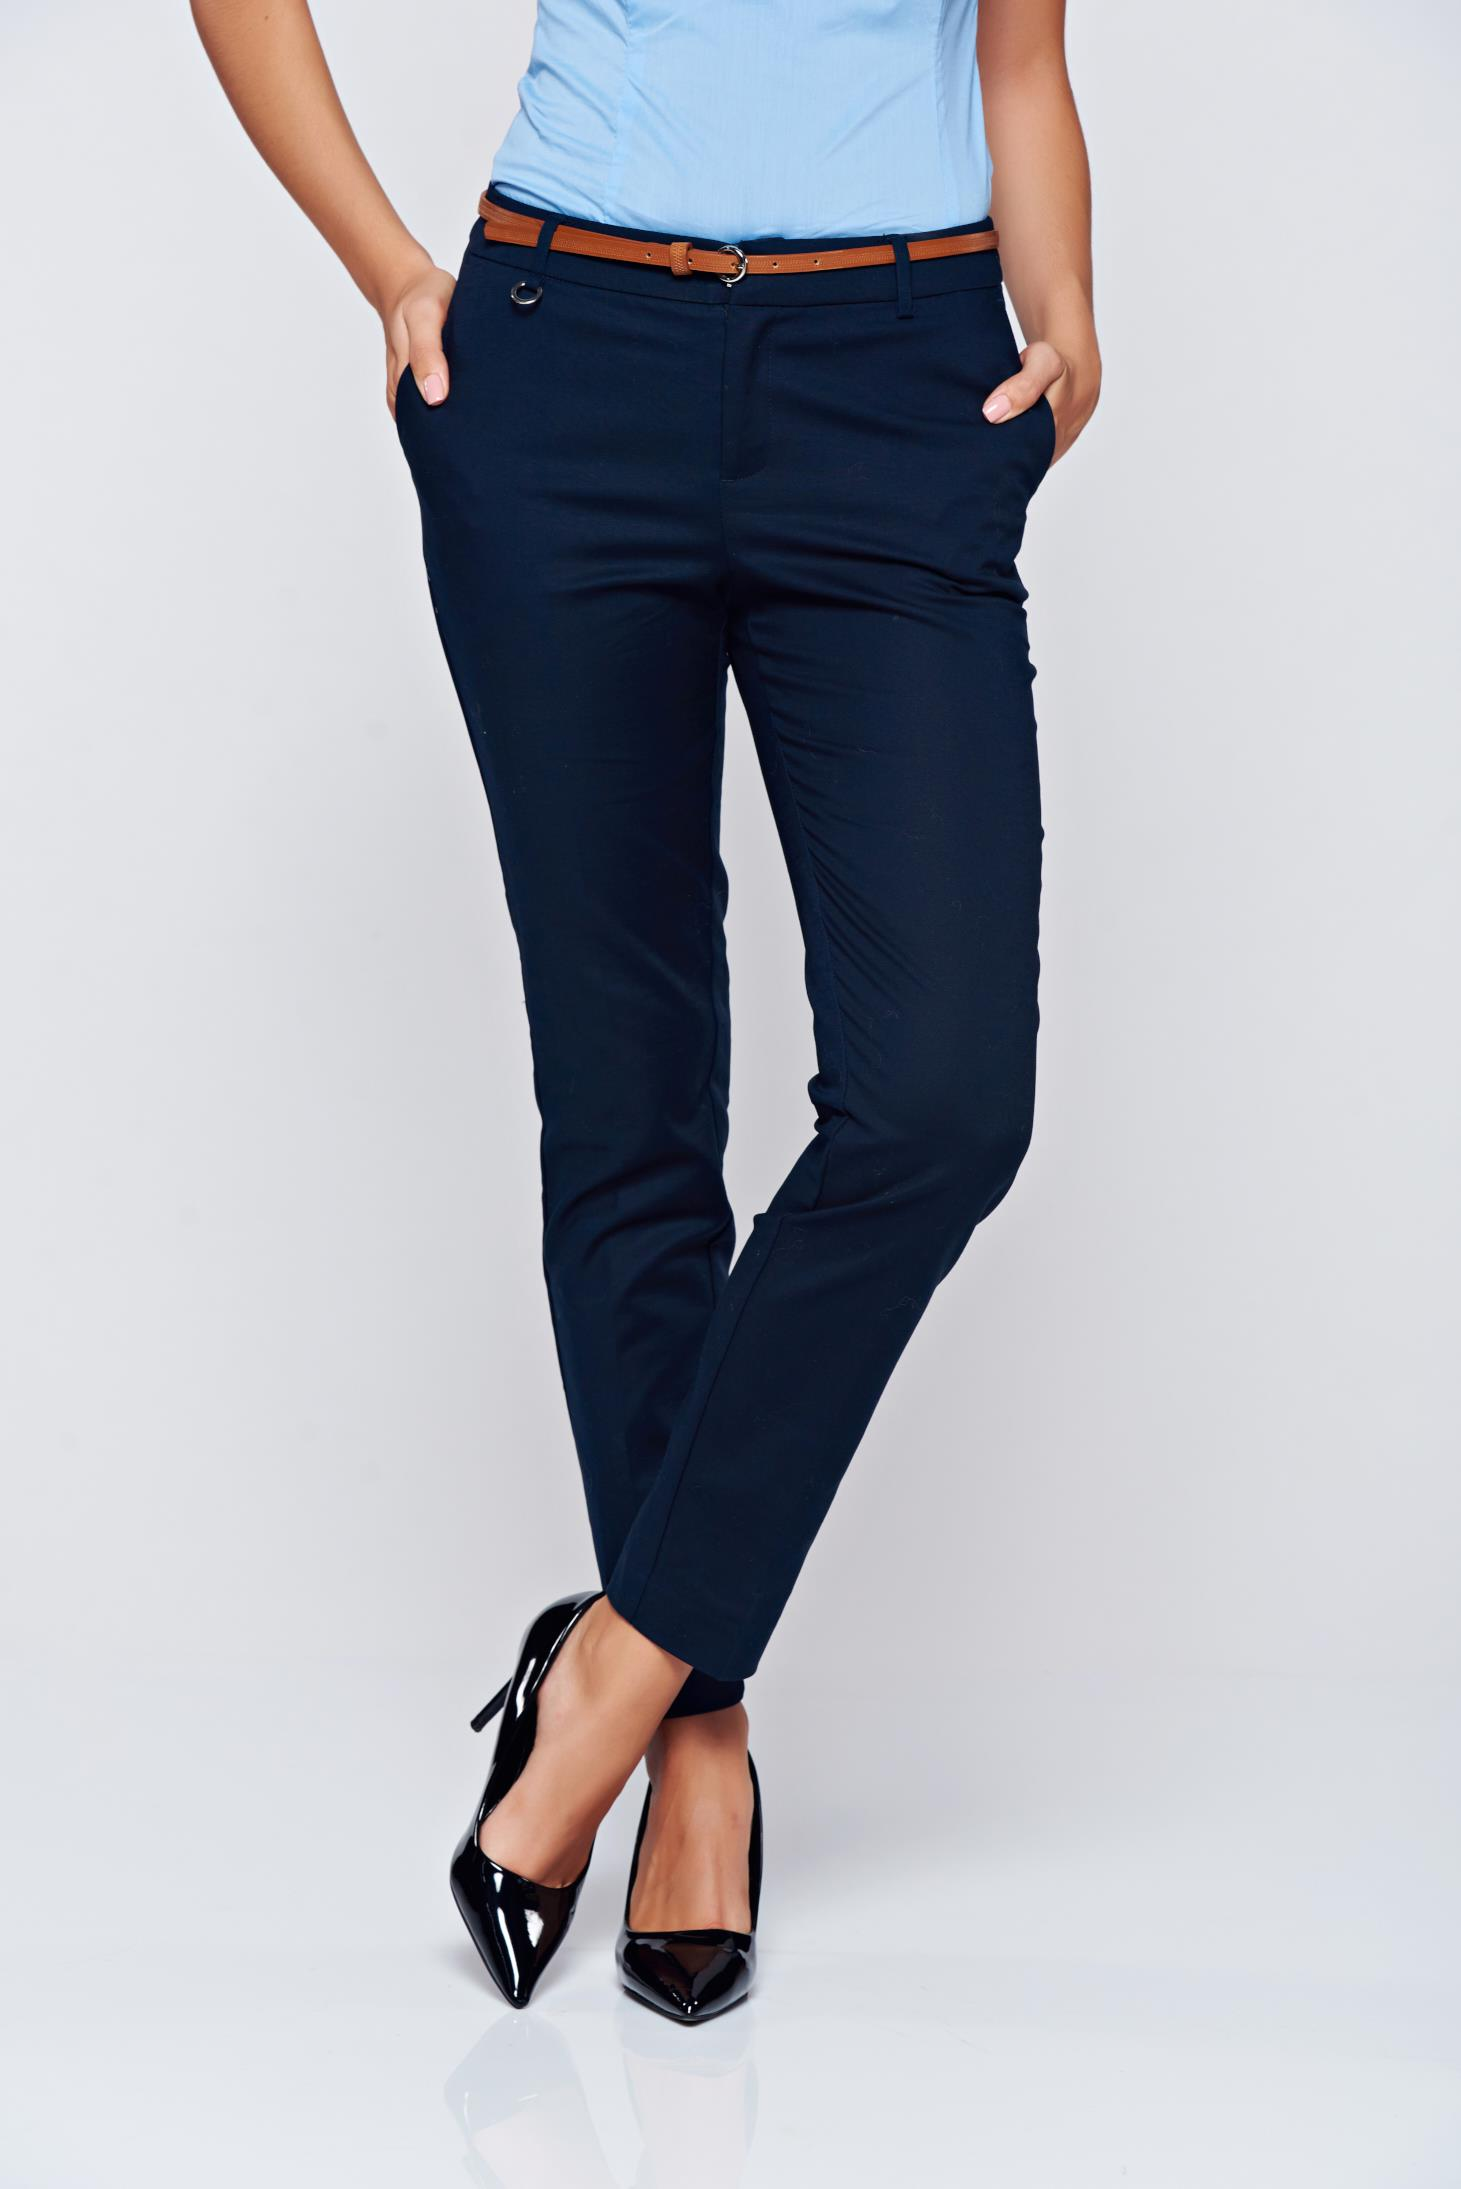 Top Secret office conical darkblue trousers with medium waist